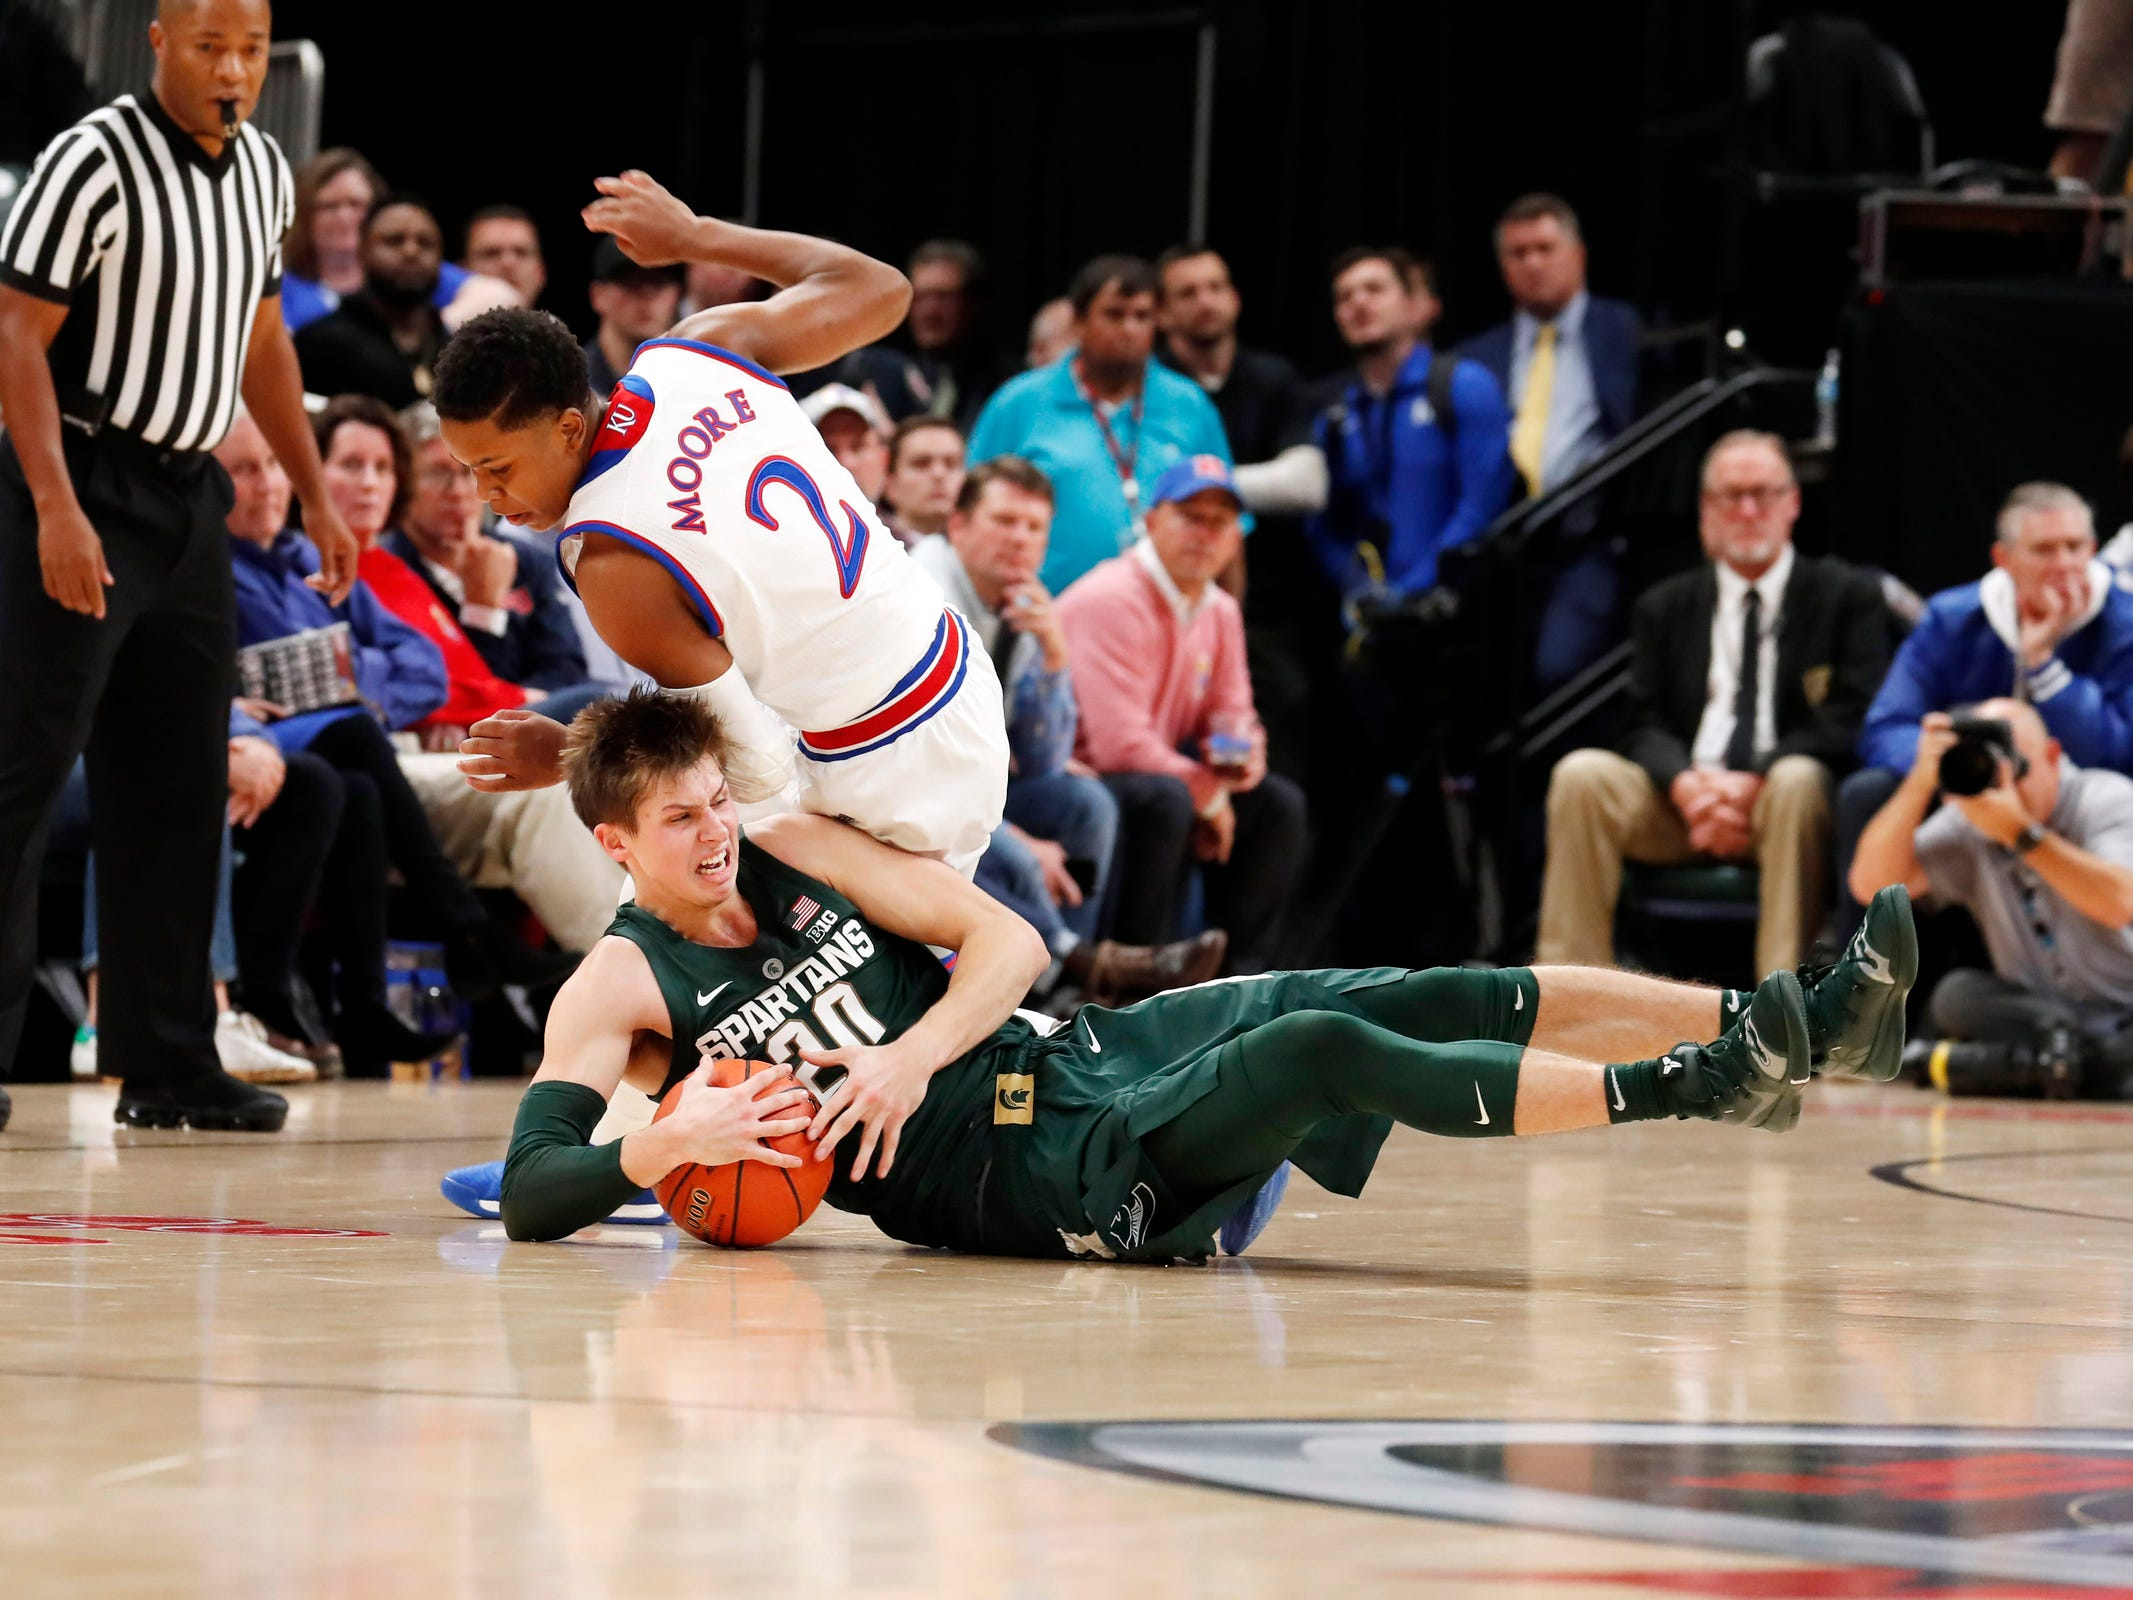 Michigan State guard Matt McQuaid scrambles for a loose ball against Kansas guard Charlie Moore in the first half during the Champions Classic at Bankers Life Fieldhouse, Nov. 6, 2018 in Indianapolis.